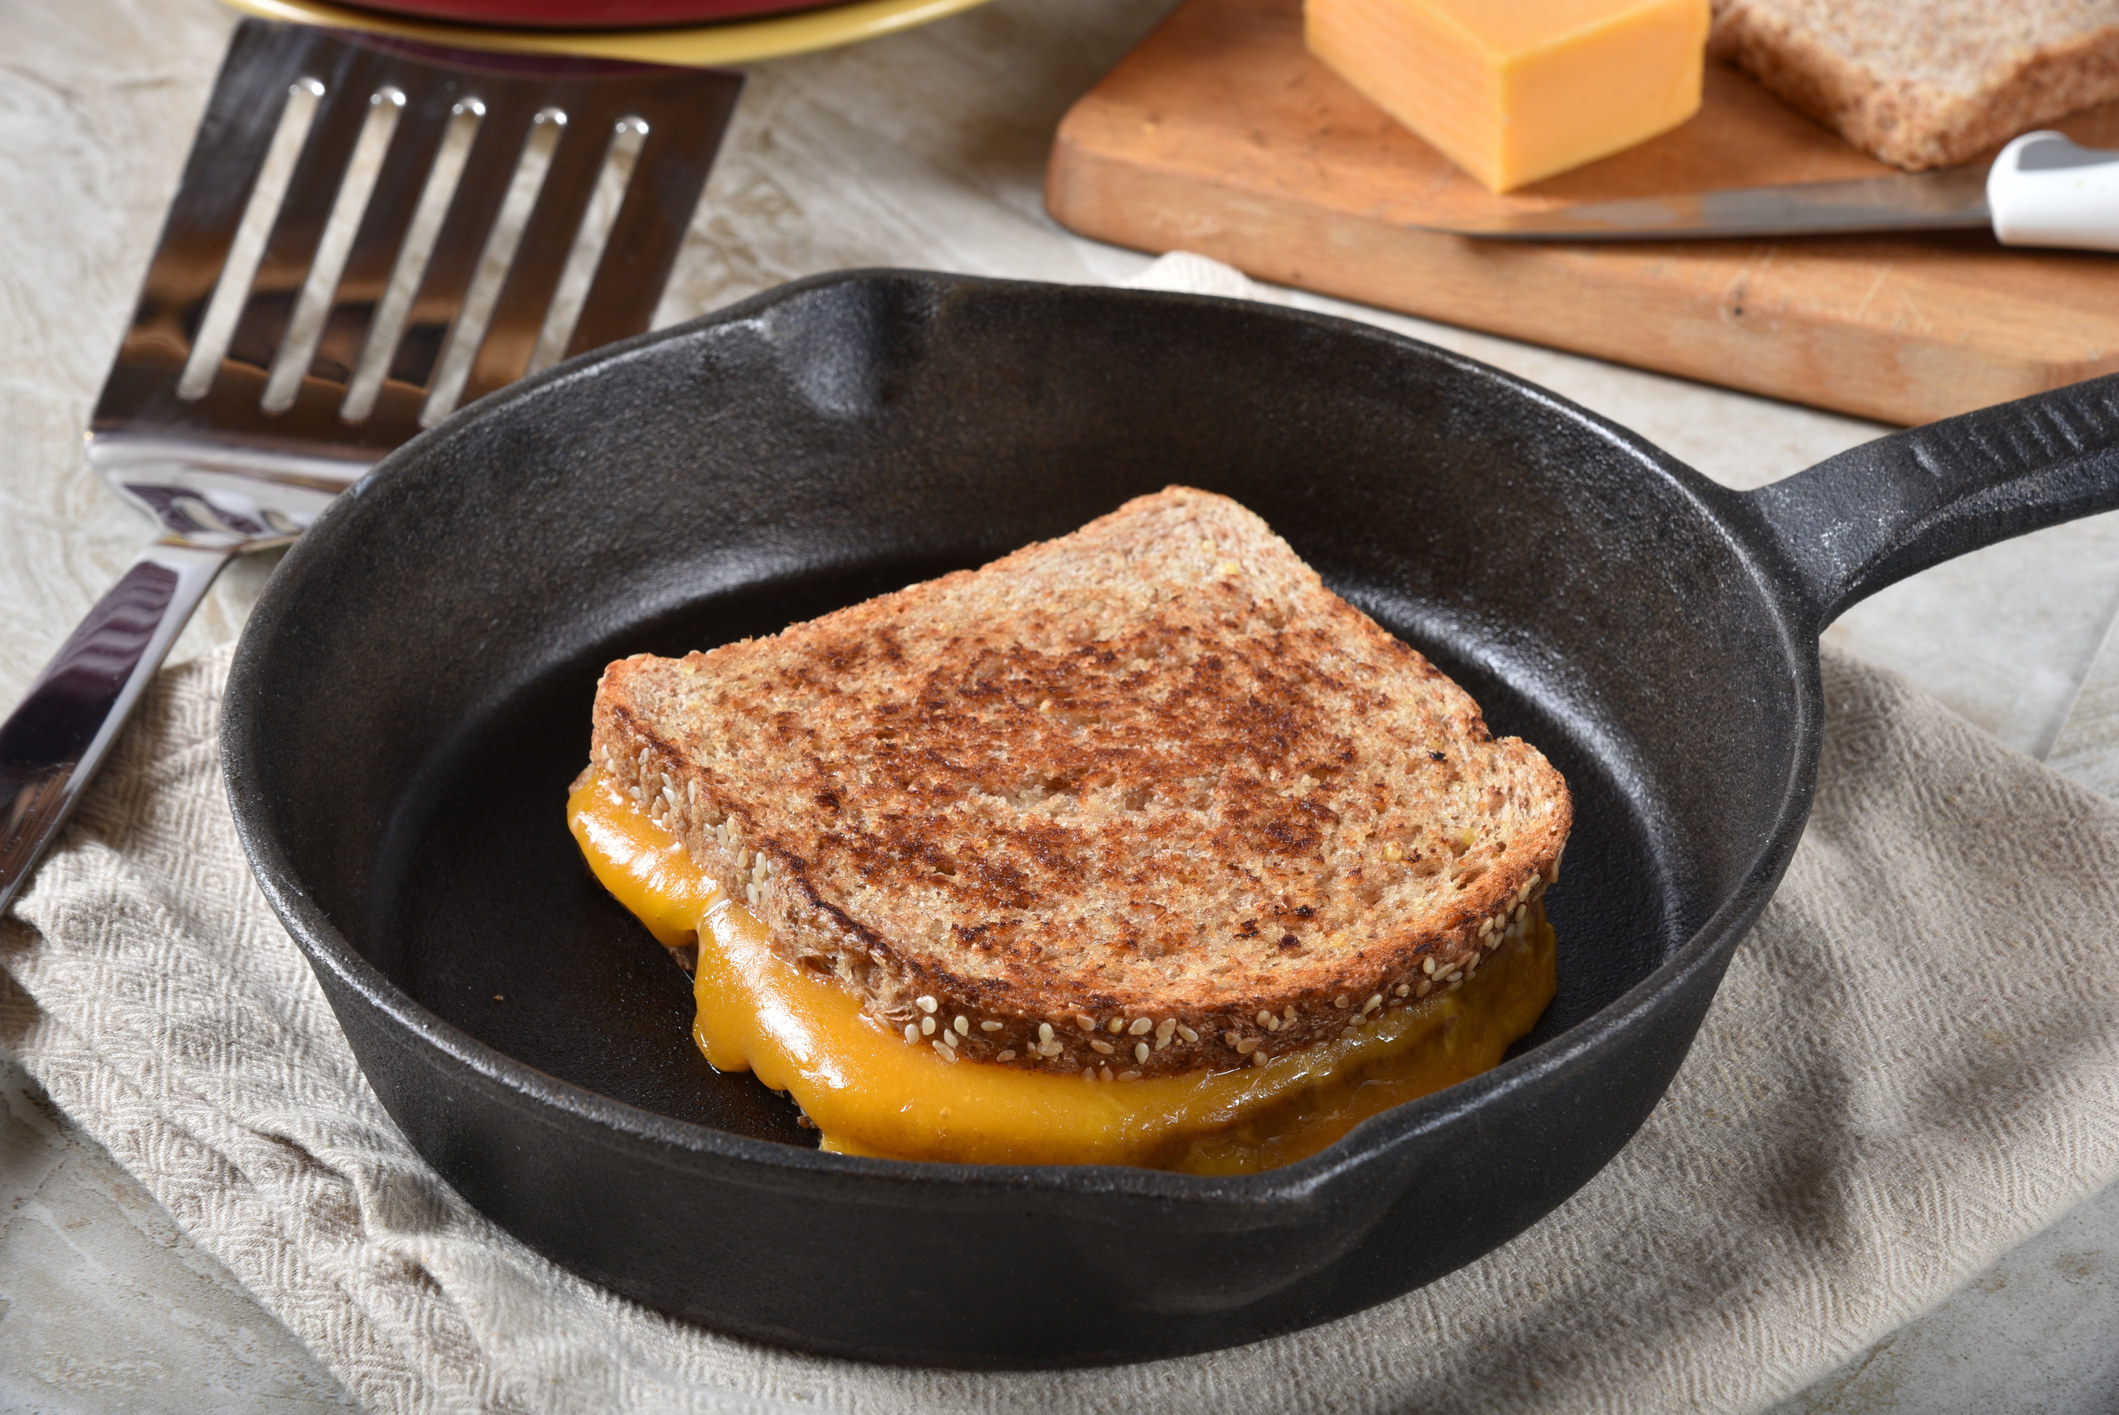 A grilled cheese sandwich on sprouted multi-grain bread in a cast iron skillet